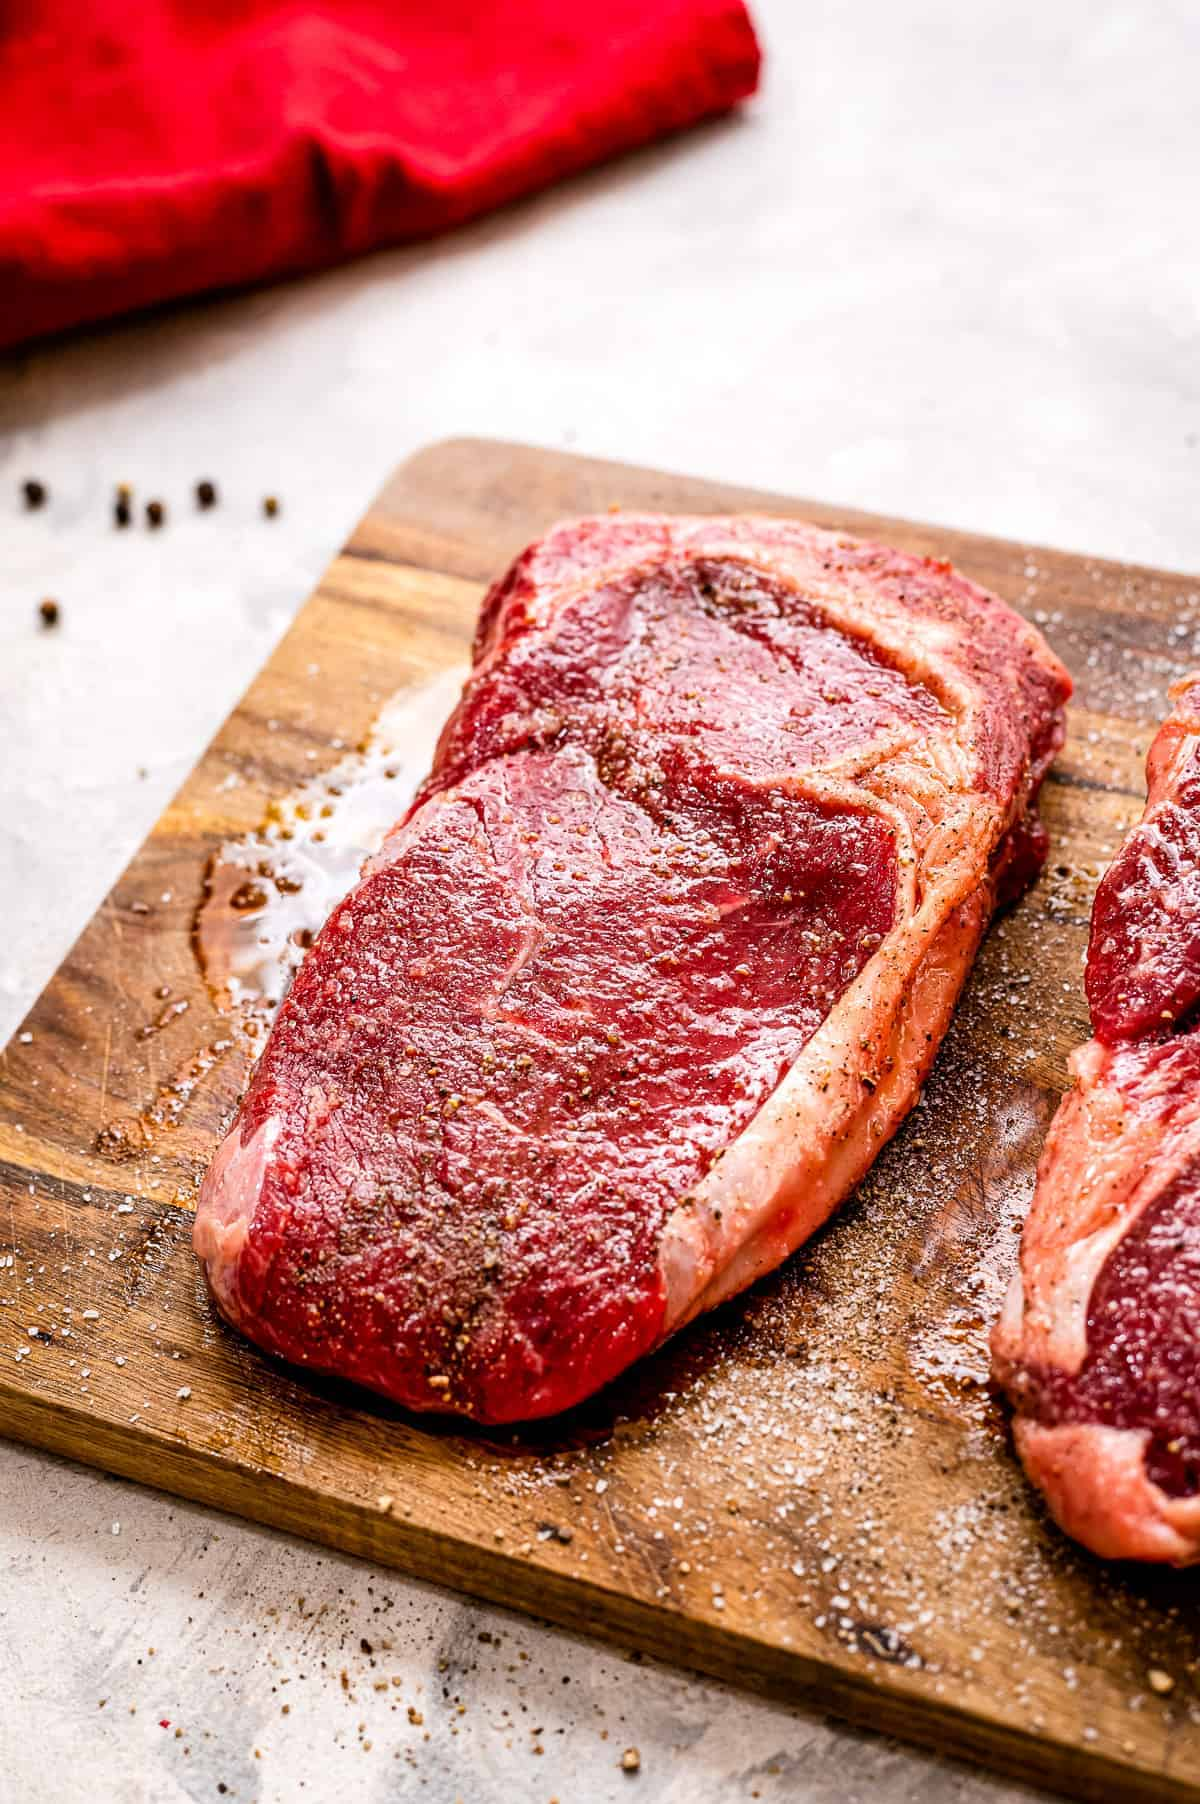 Wood cutting board with raw steak seasoned with salt and pepper